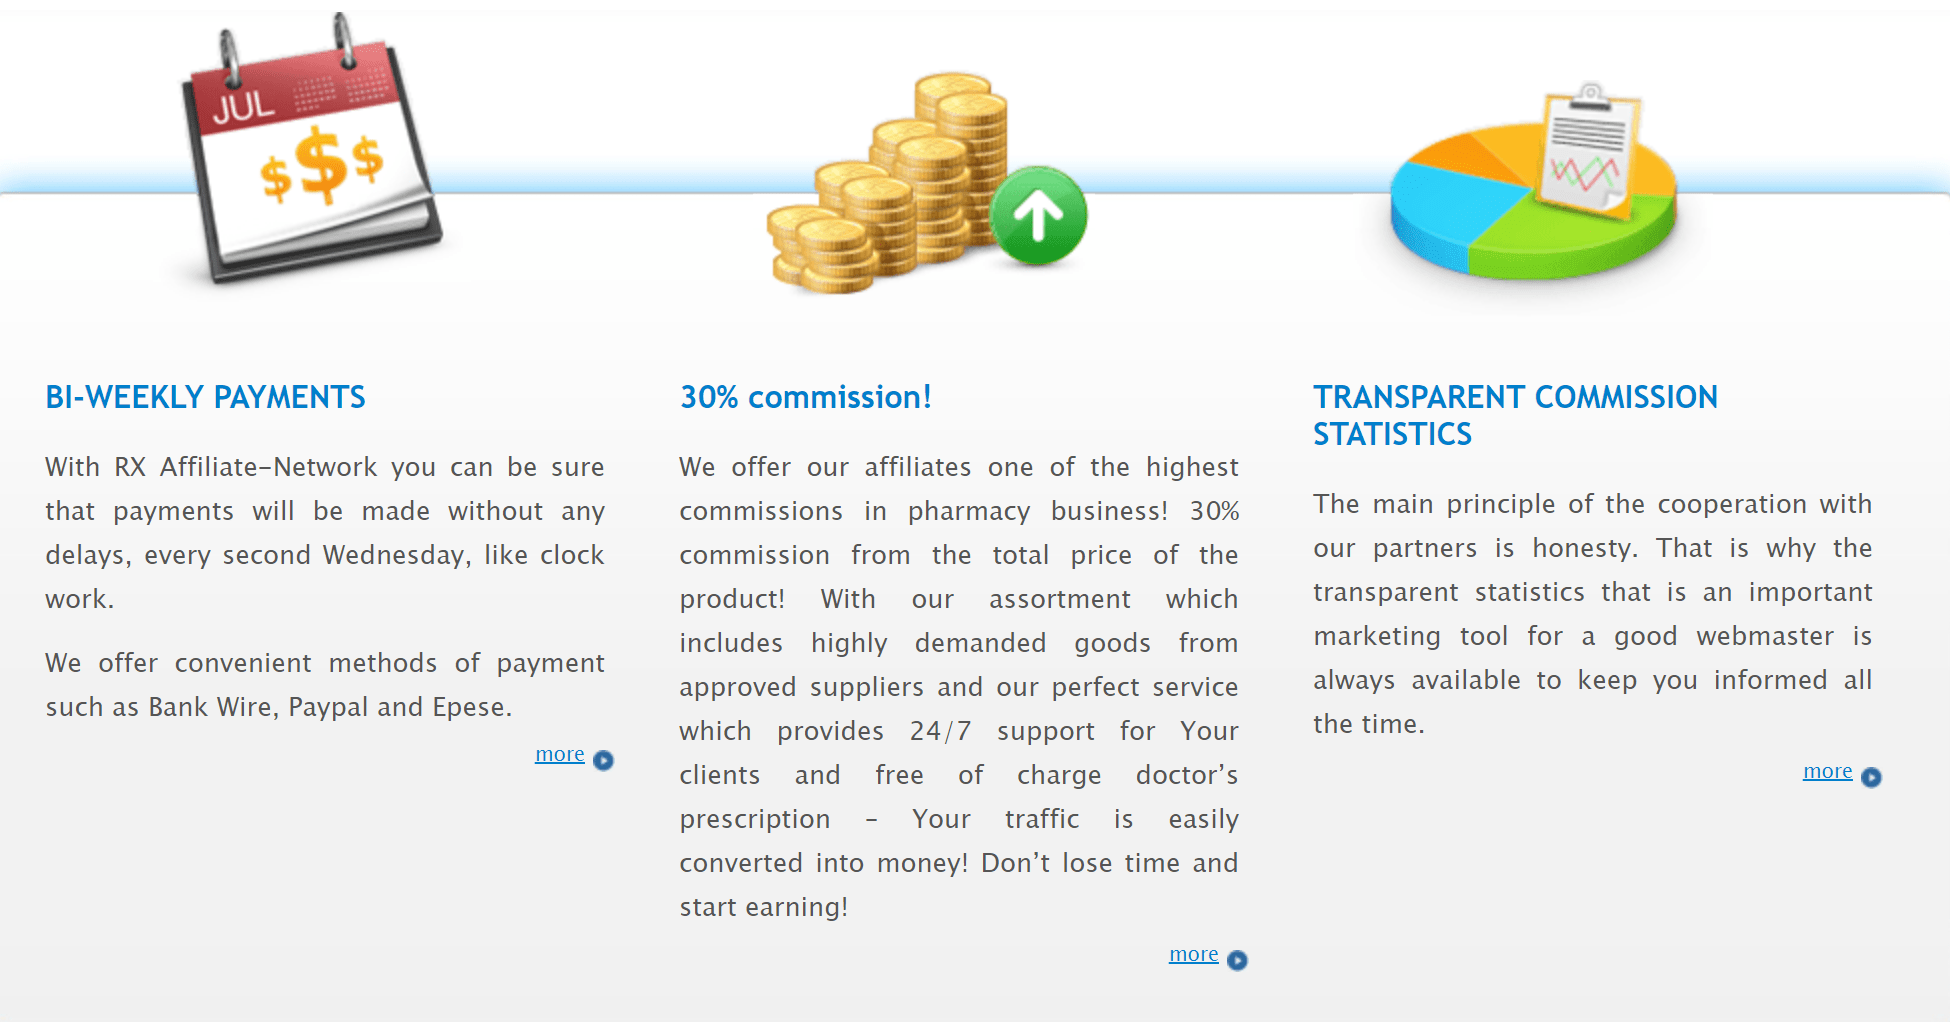 RX-Affiliate-Network